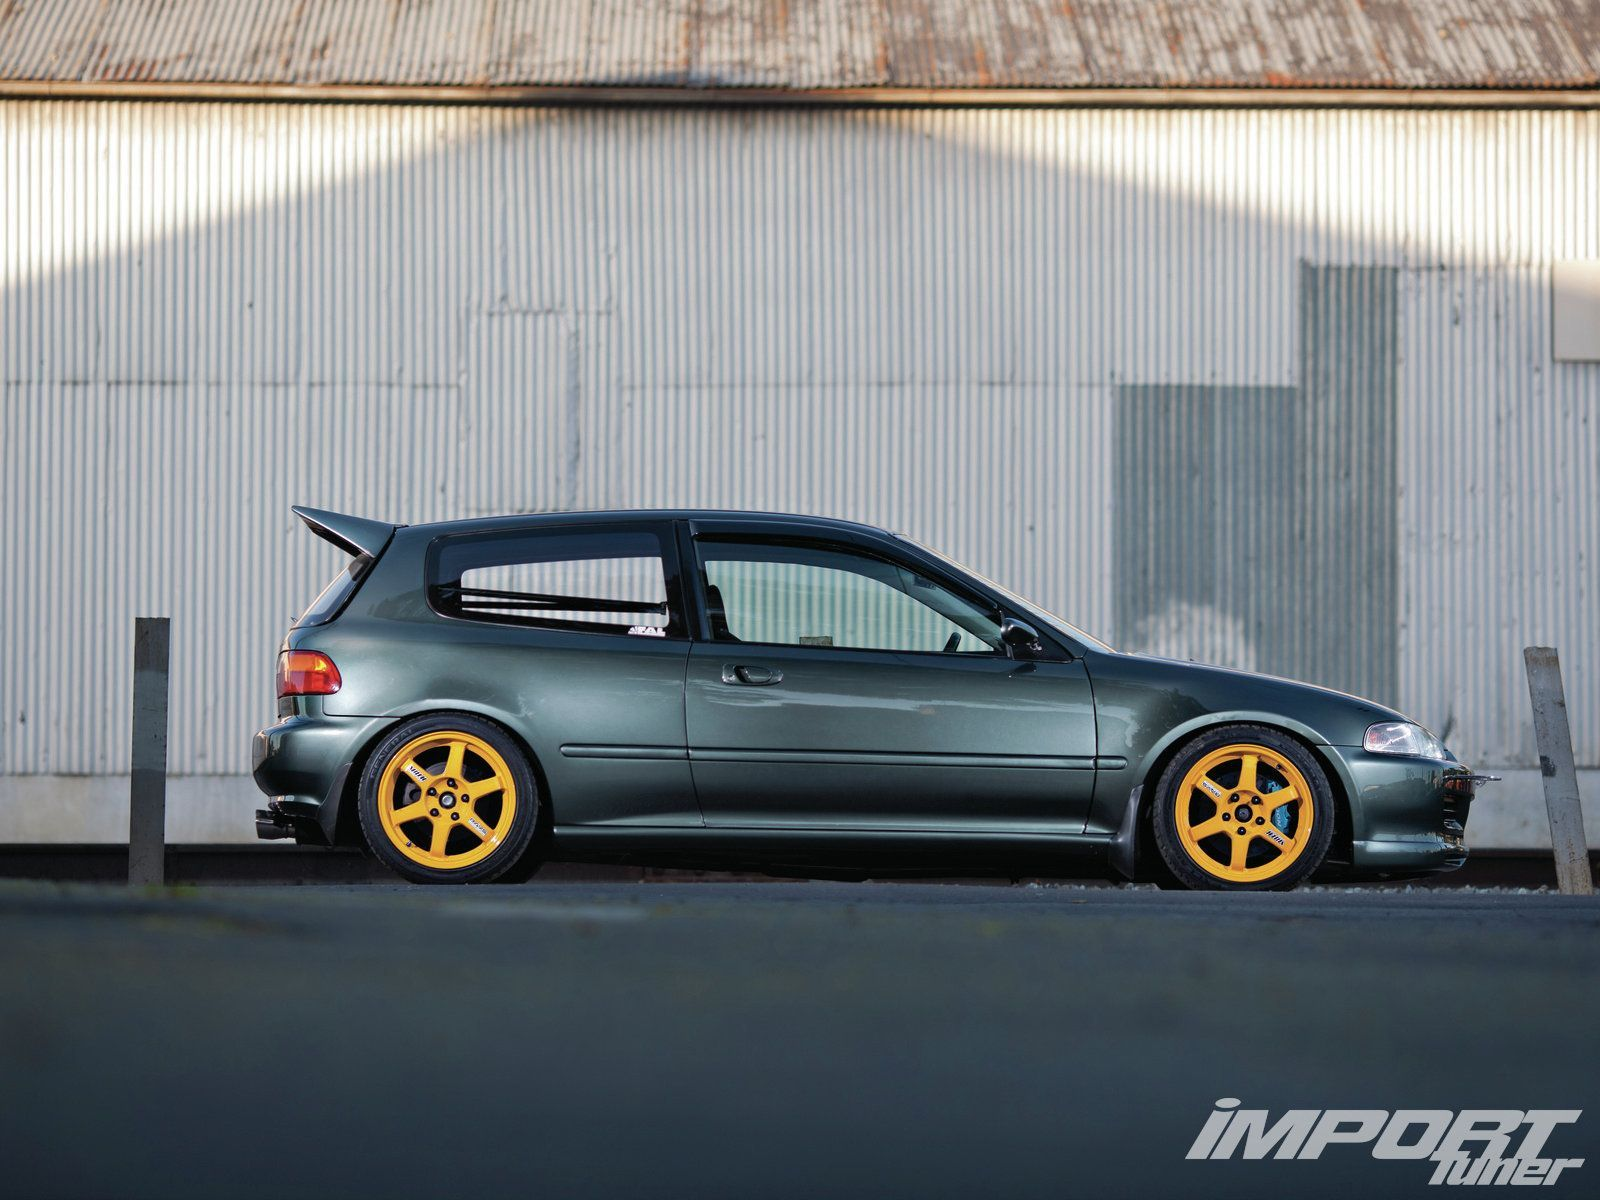 Impp 1302 12 O+1994 Honda Civic+volk Racing Te37 Wheels (1600×1200)